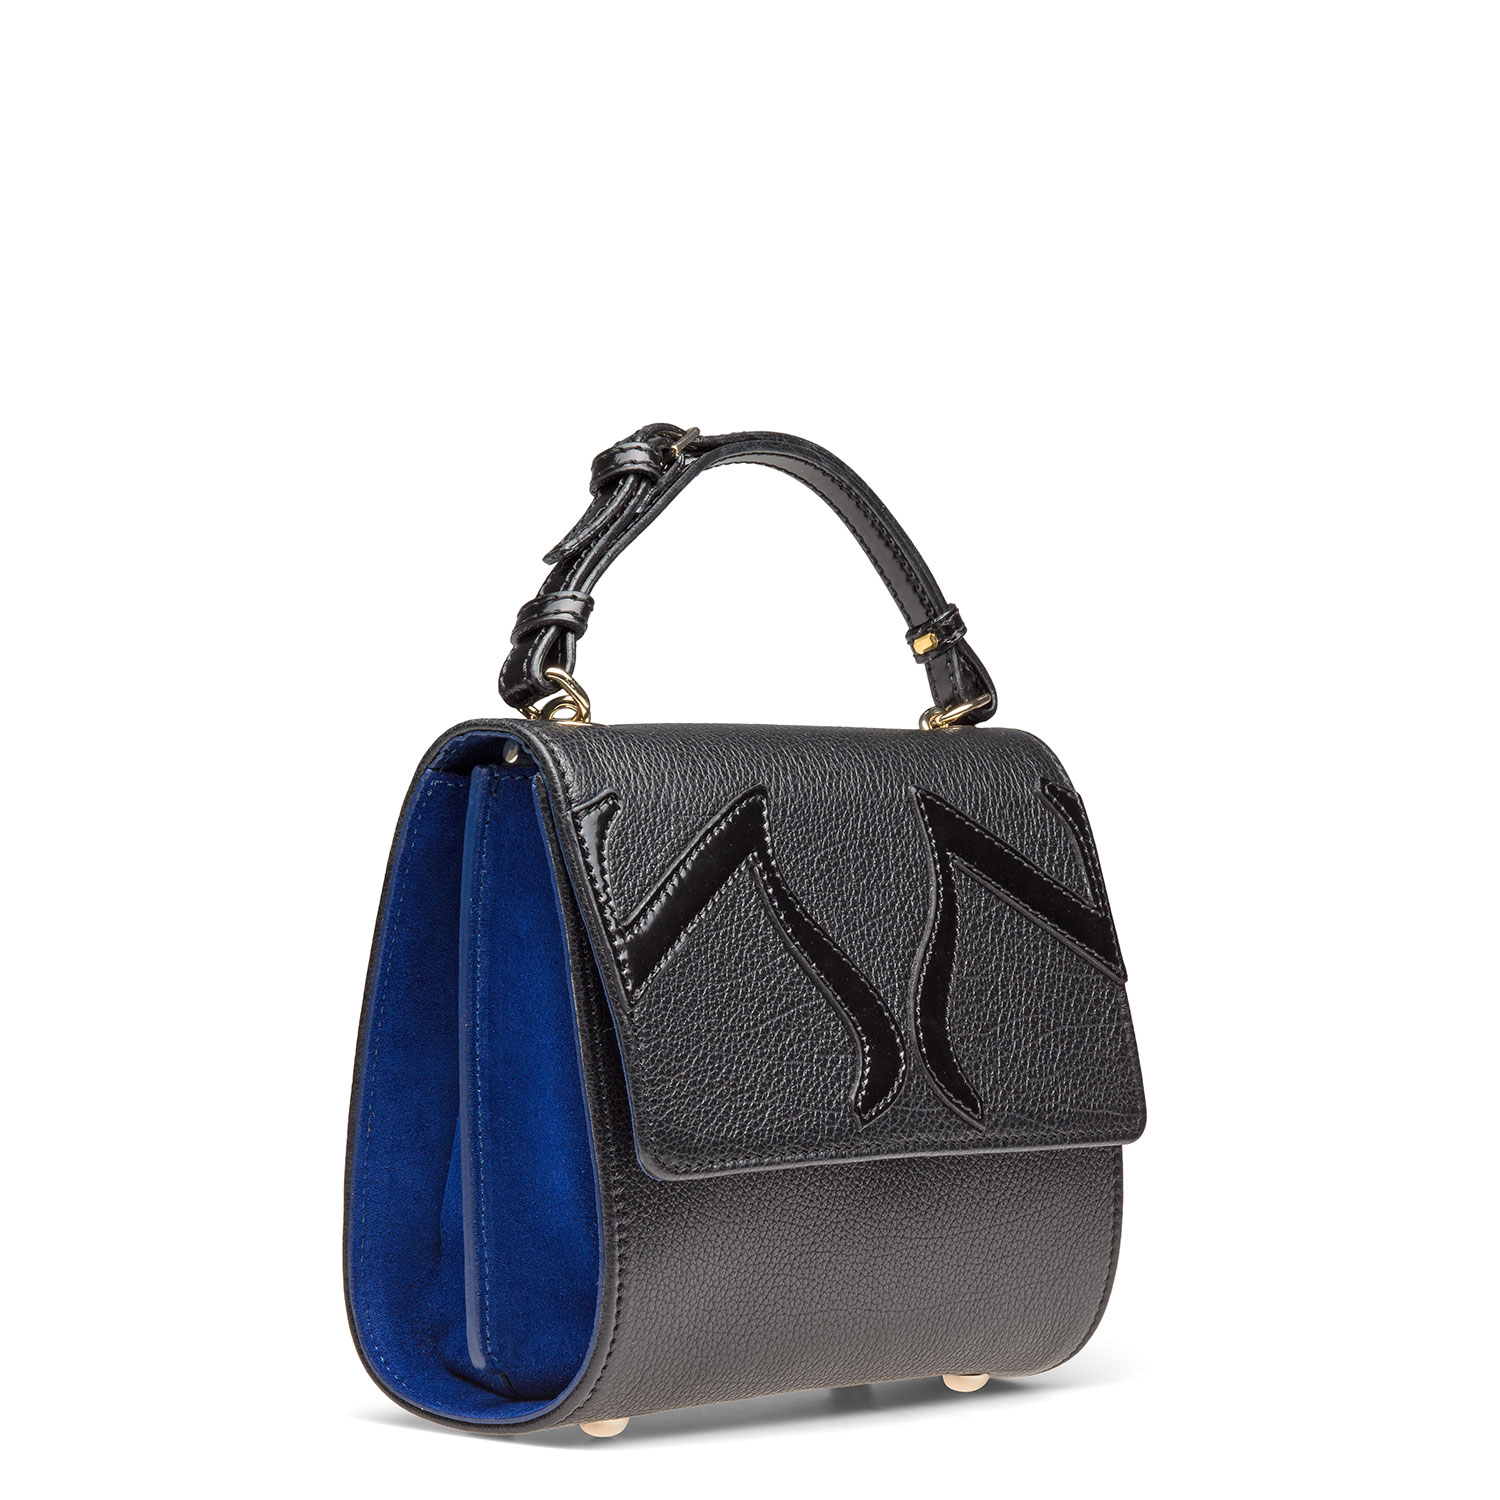 Women's bag PAZOLINI PB-N0178-1BBL